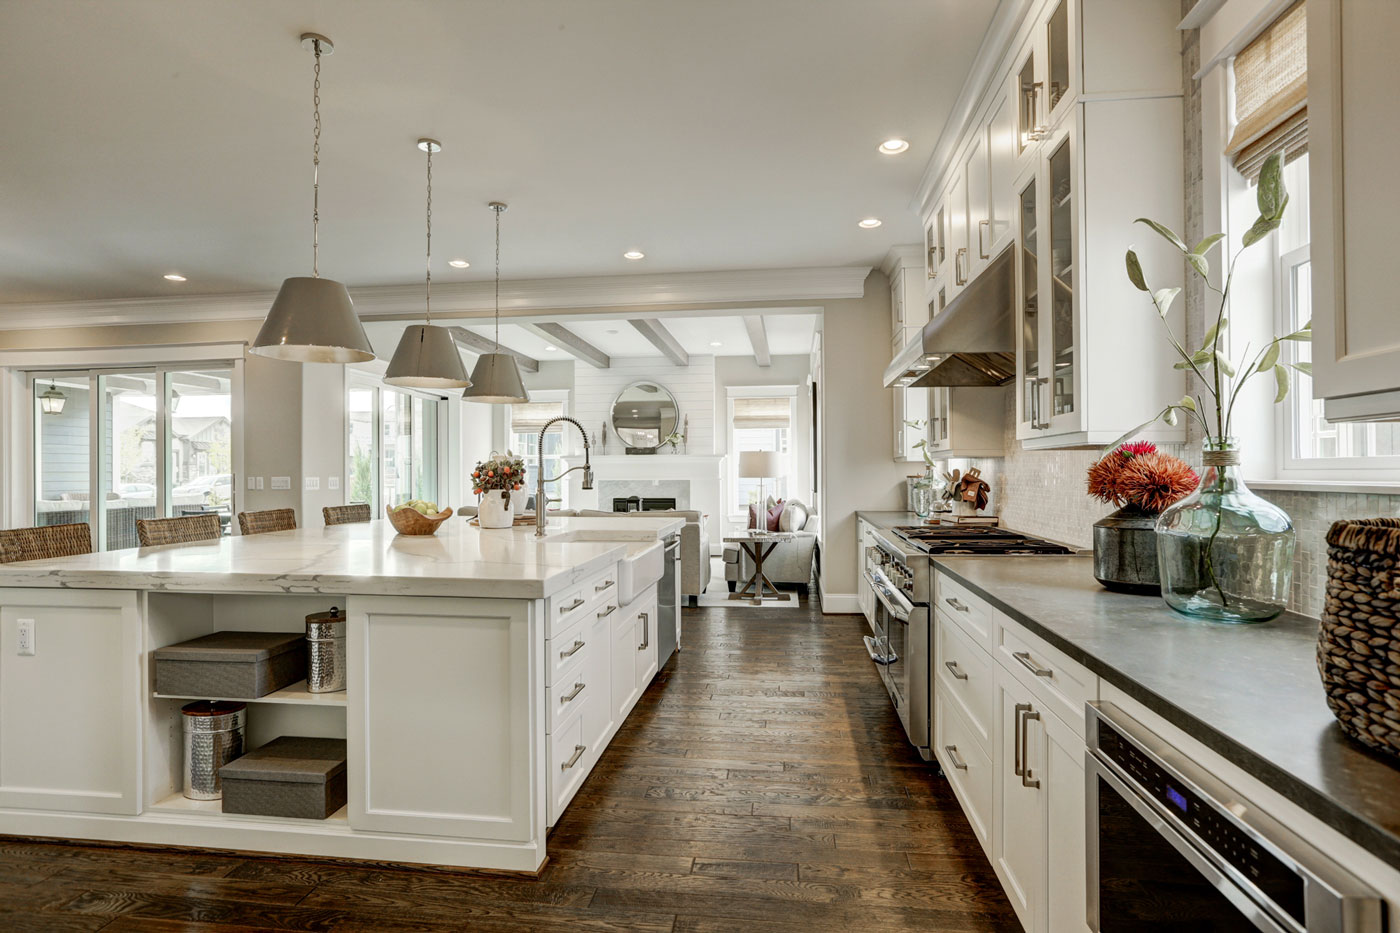 View larger image colorado model home featuring a white farmhouse kitchen with an oversized island and dramatic statement pendants